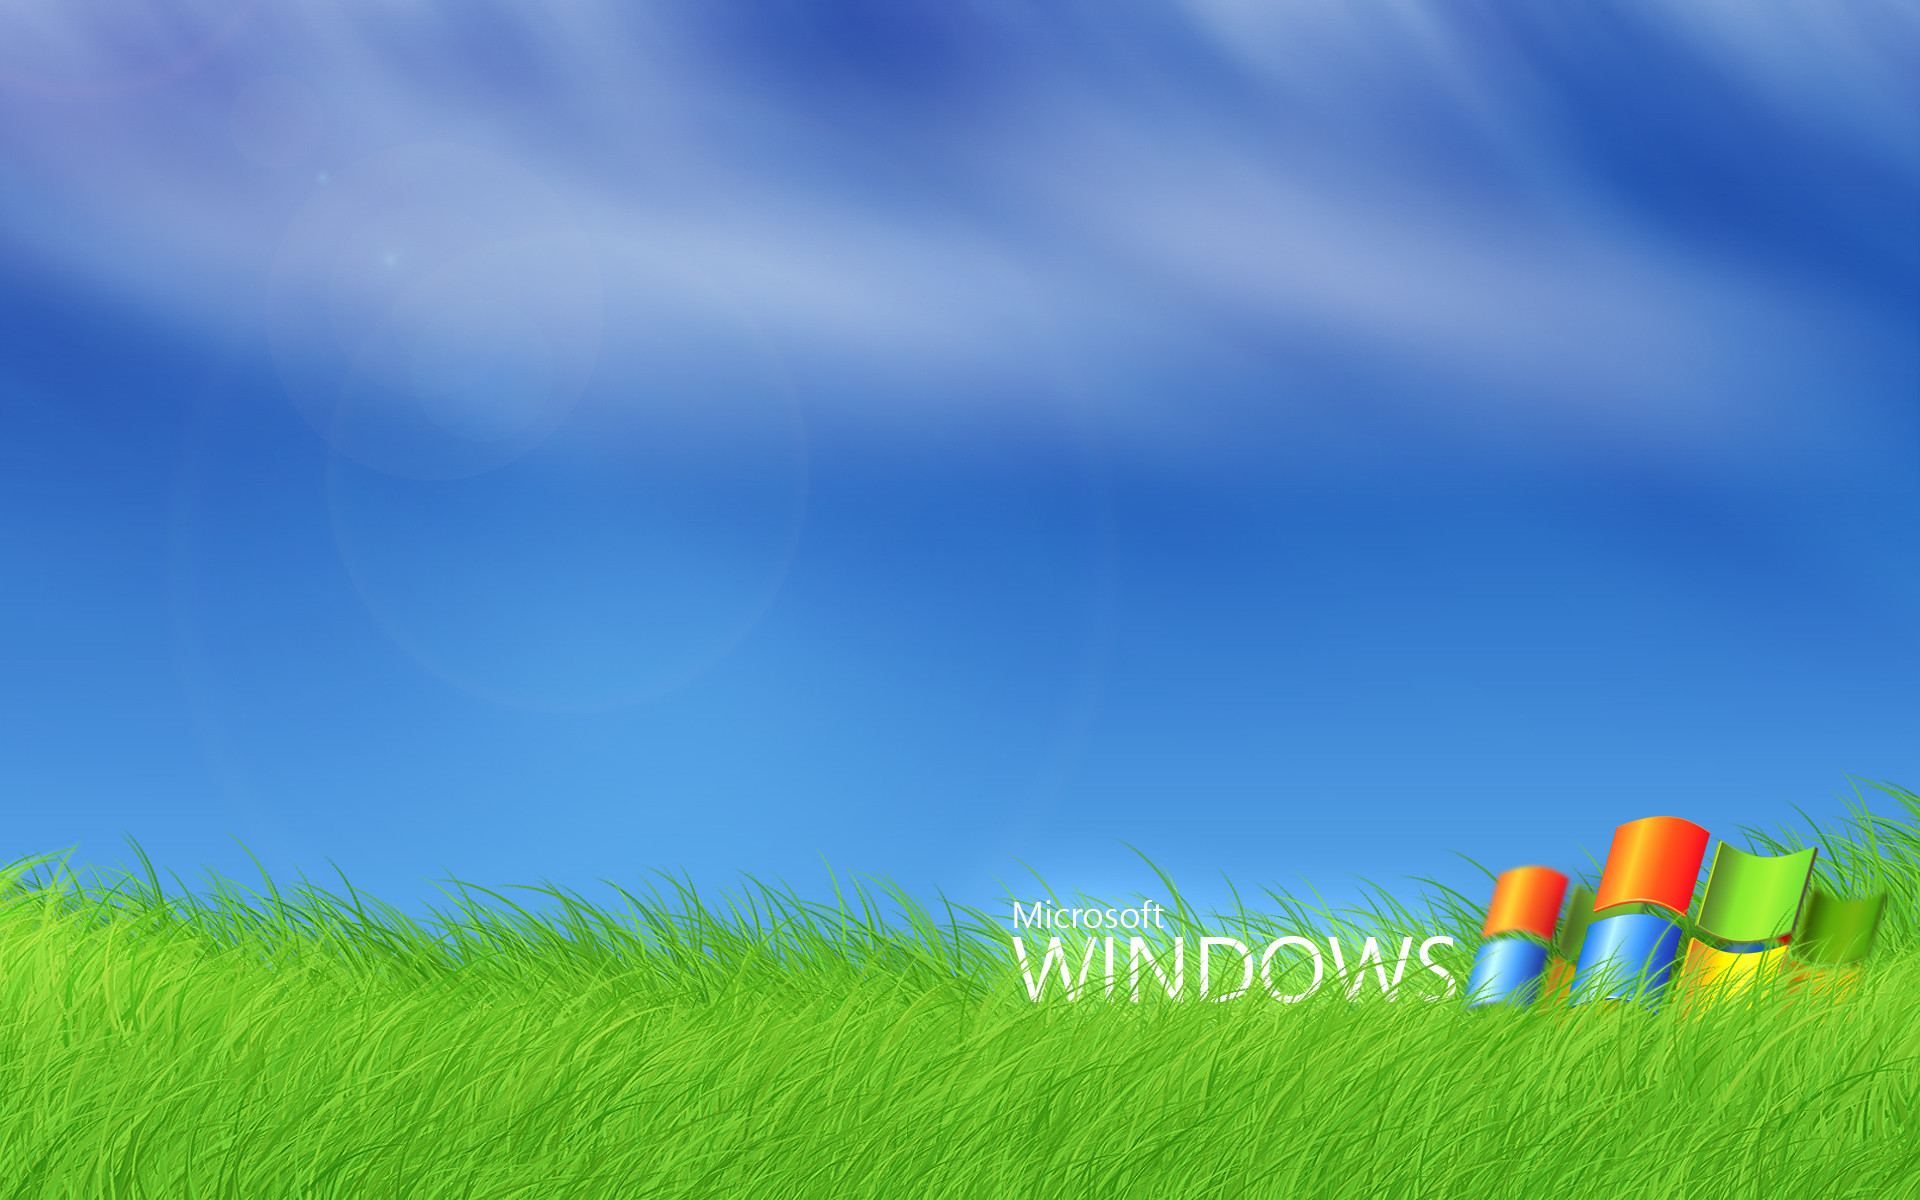 D Animated Wallpaper for Windows Computer Wallpapers ,Hd 1920×1080 Windows  7 Desktop Wallpapers